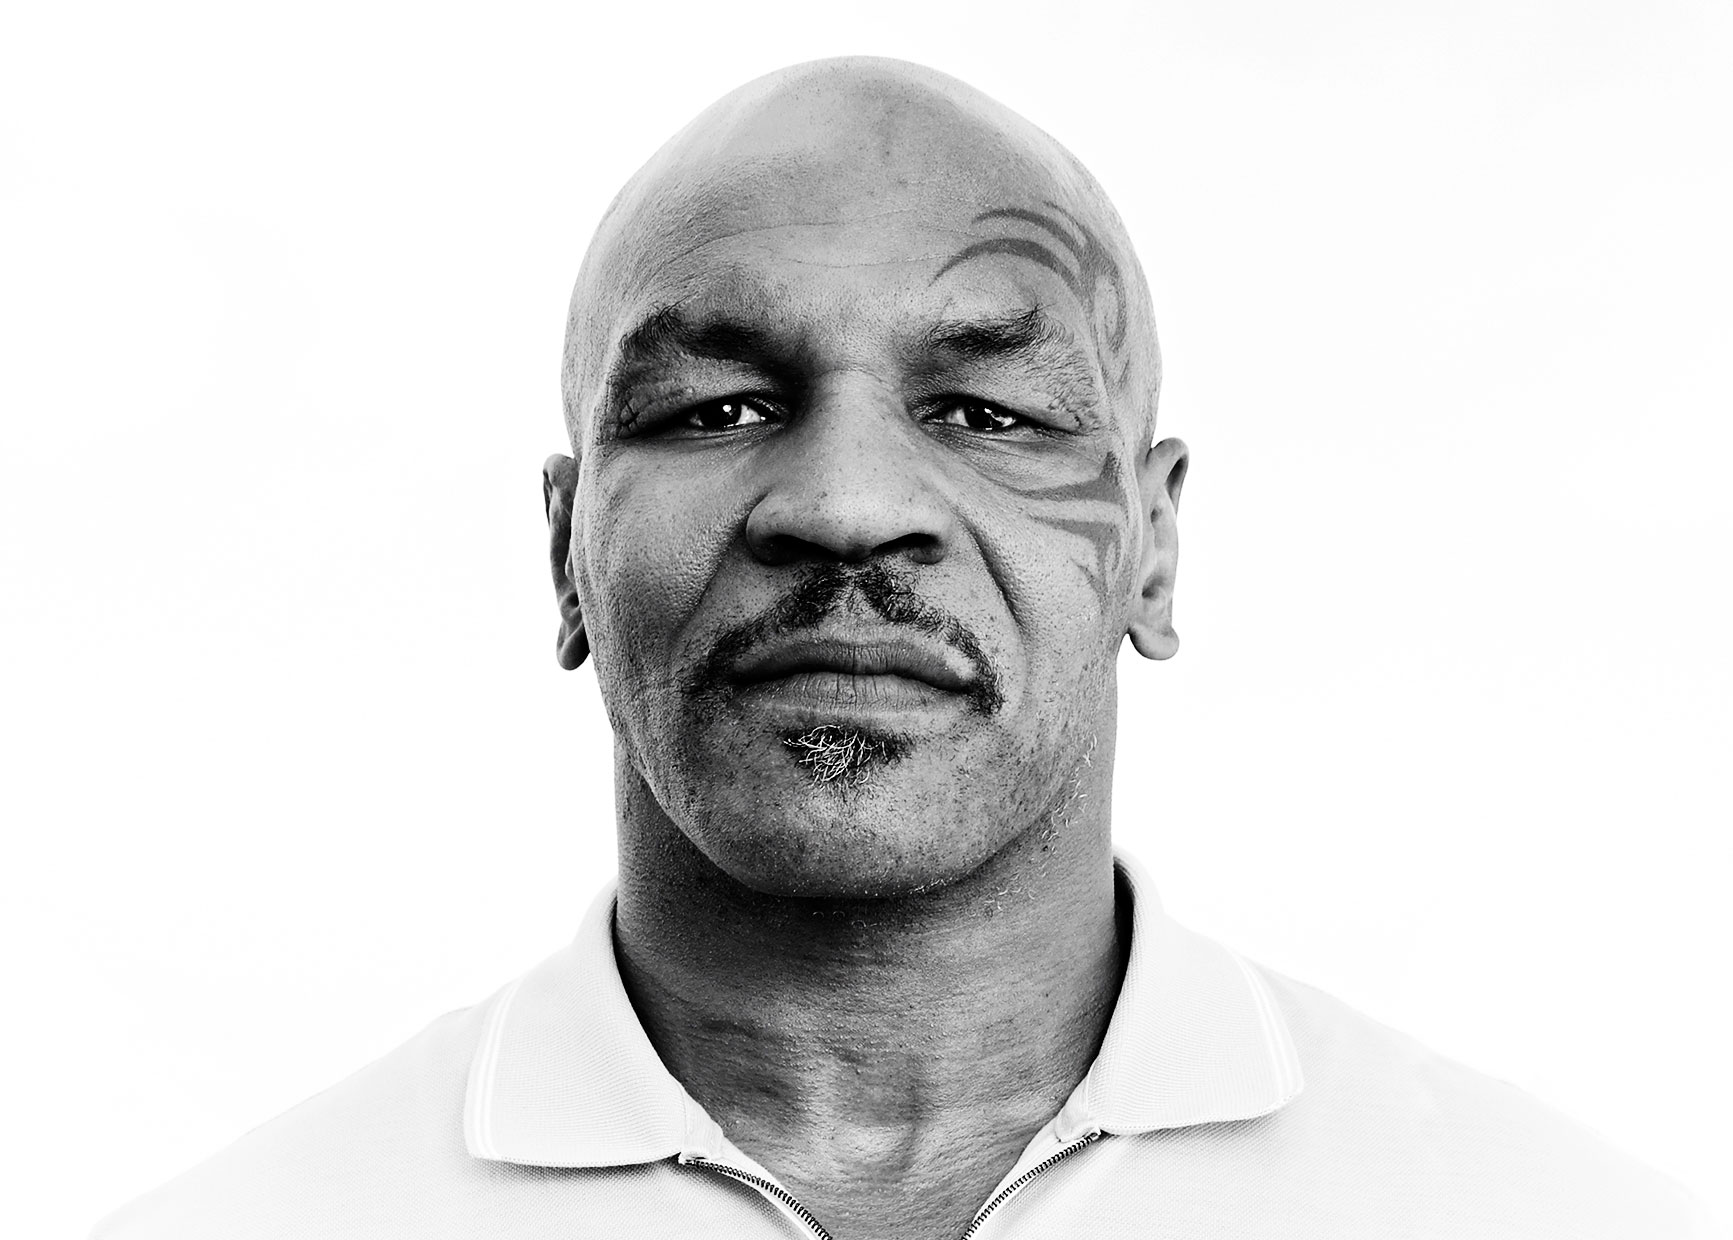 mike_tyson_4131